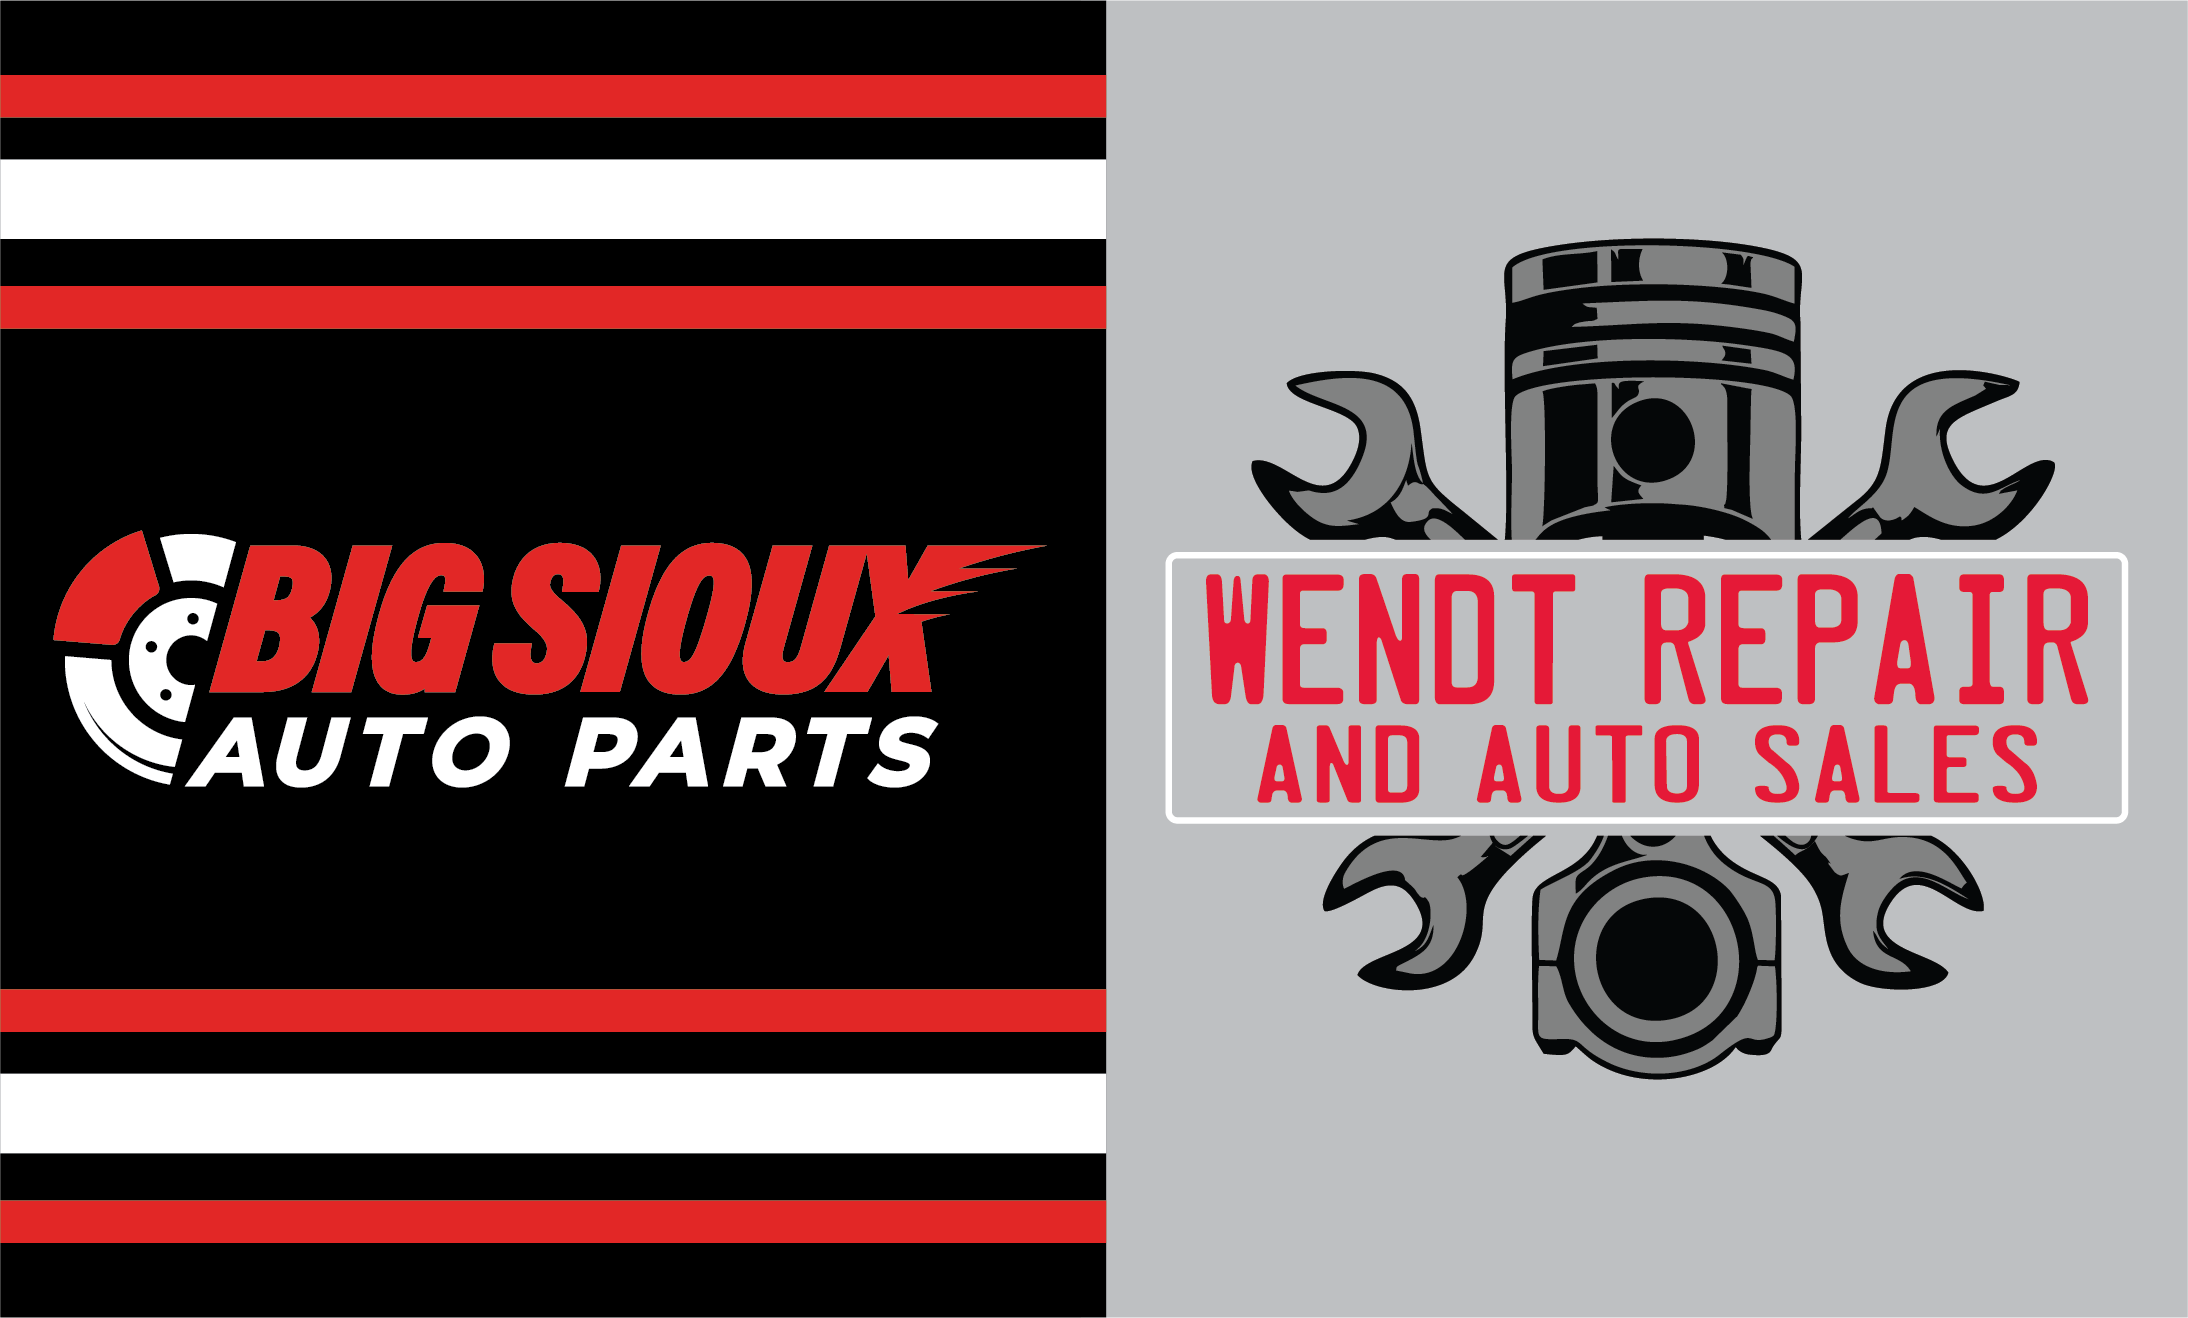 Wendt Repair - Big Sioux Auto Parts